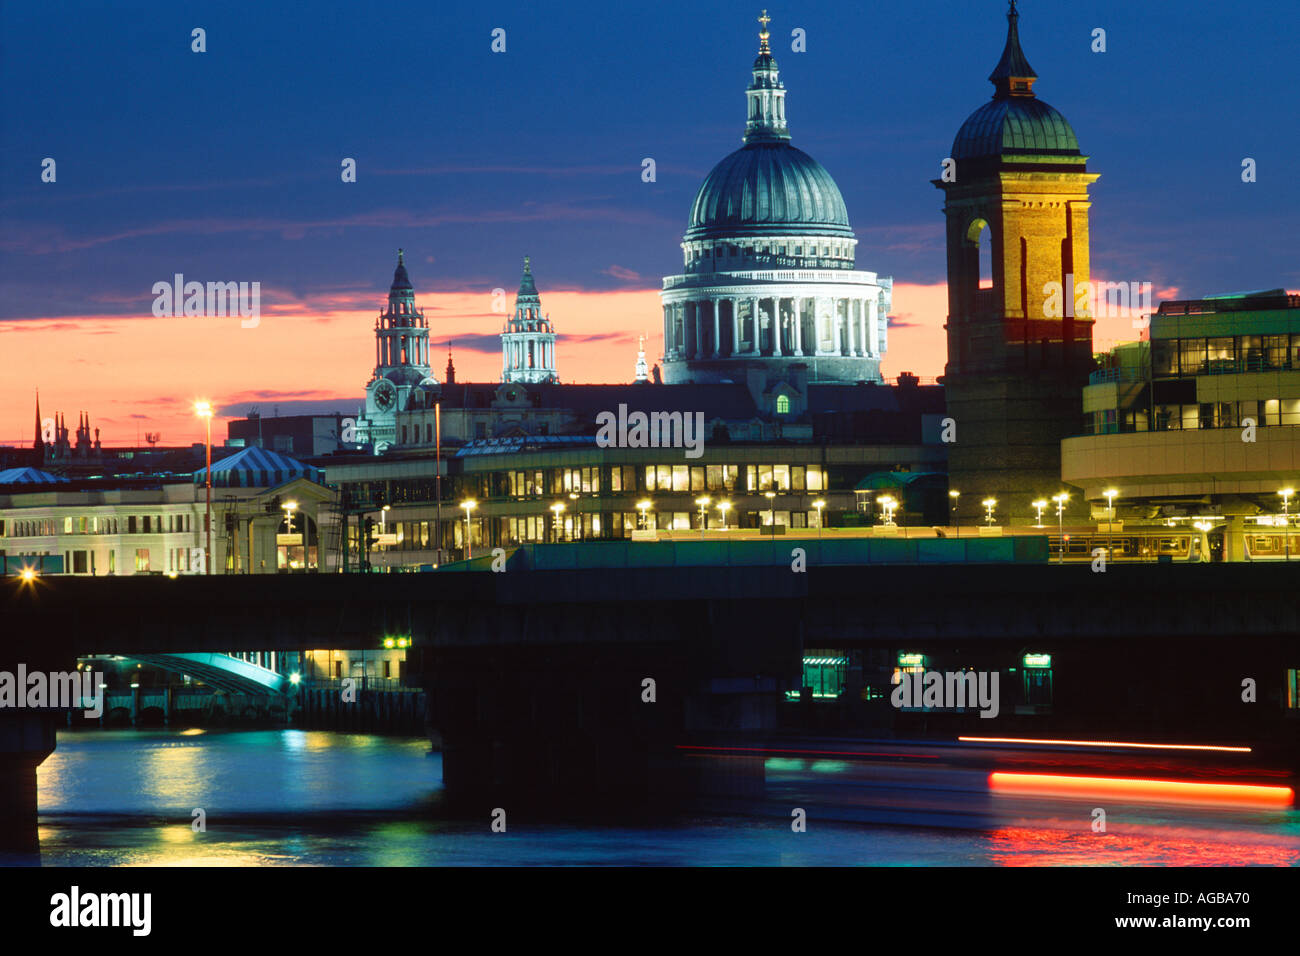 ST PAUL CATHEDRAL AND THAMES RIVER AT NIGHT LONDON - Stock Image